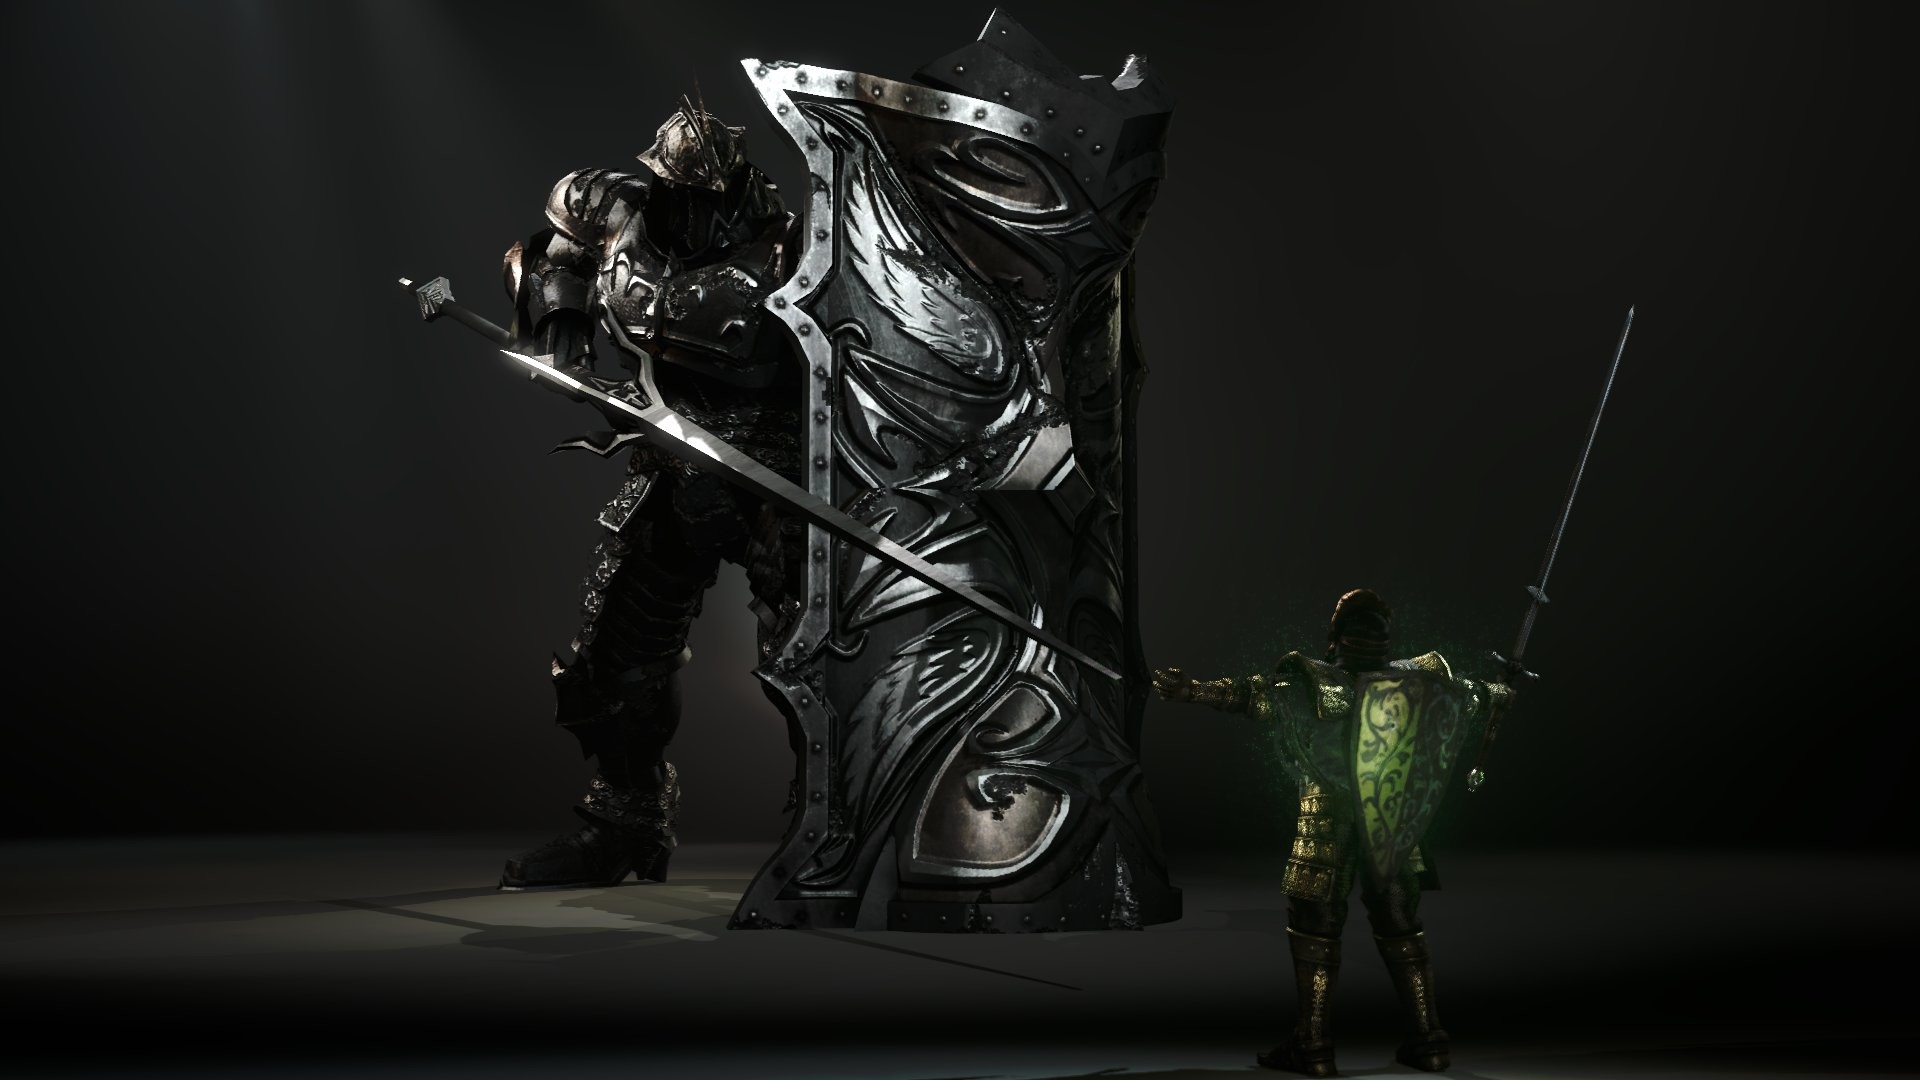 Res: 1920x1080, Demon's Souls HD Wallpapers 18 - 1920 X 1080